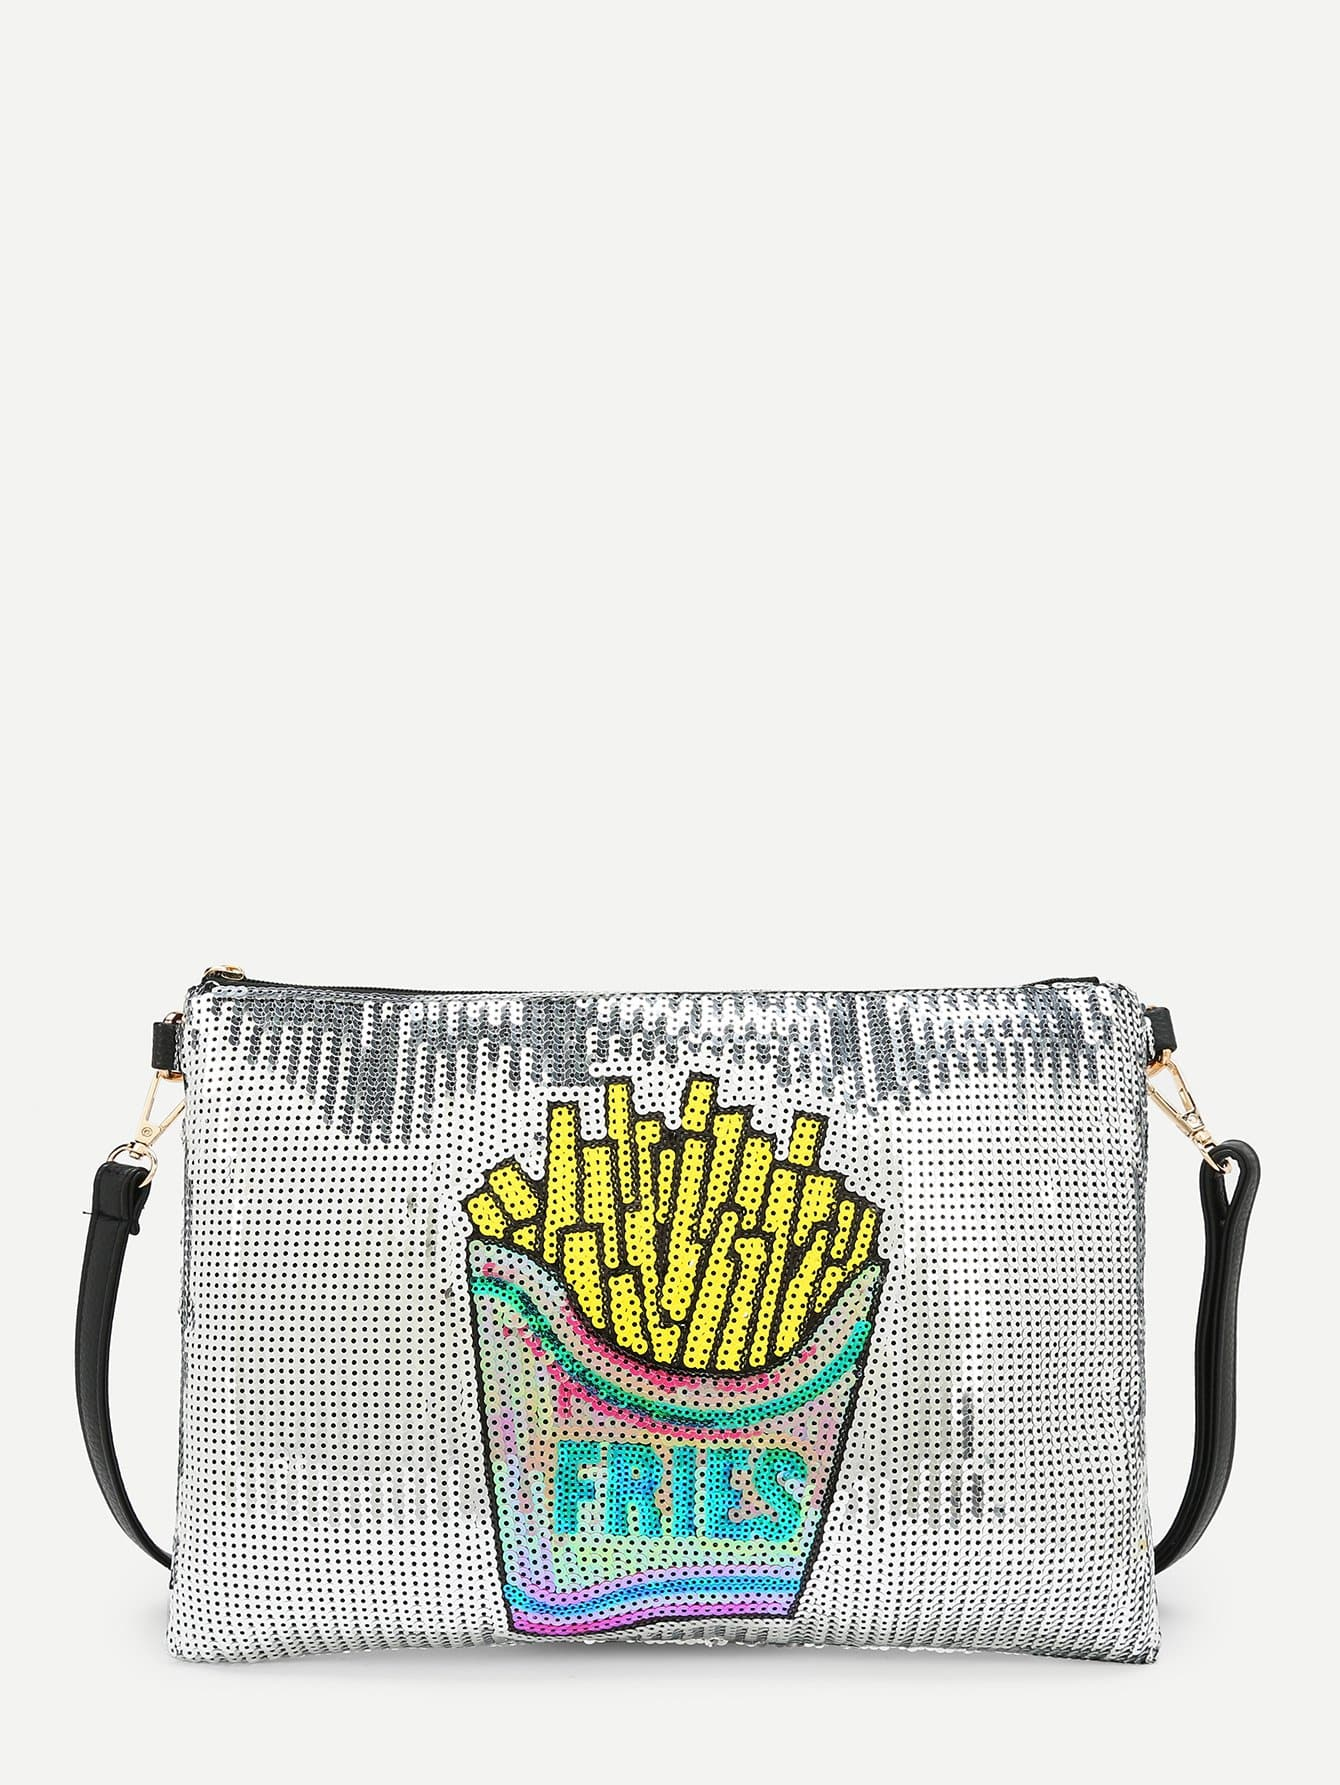 French Fries Pattern PU Clutch Bag transparent envelope clutch bag